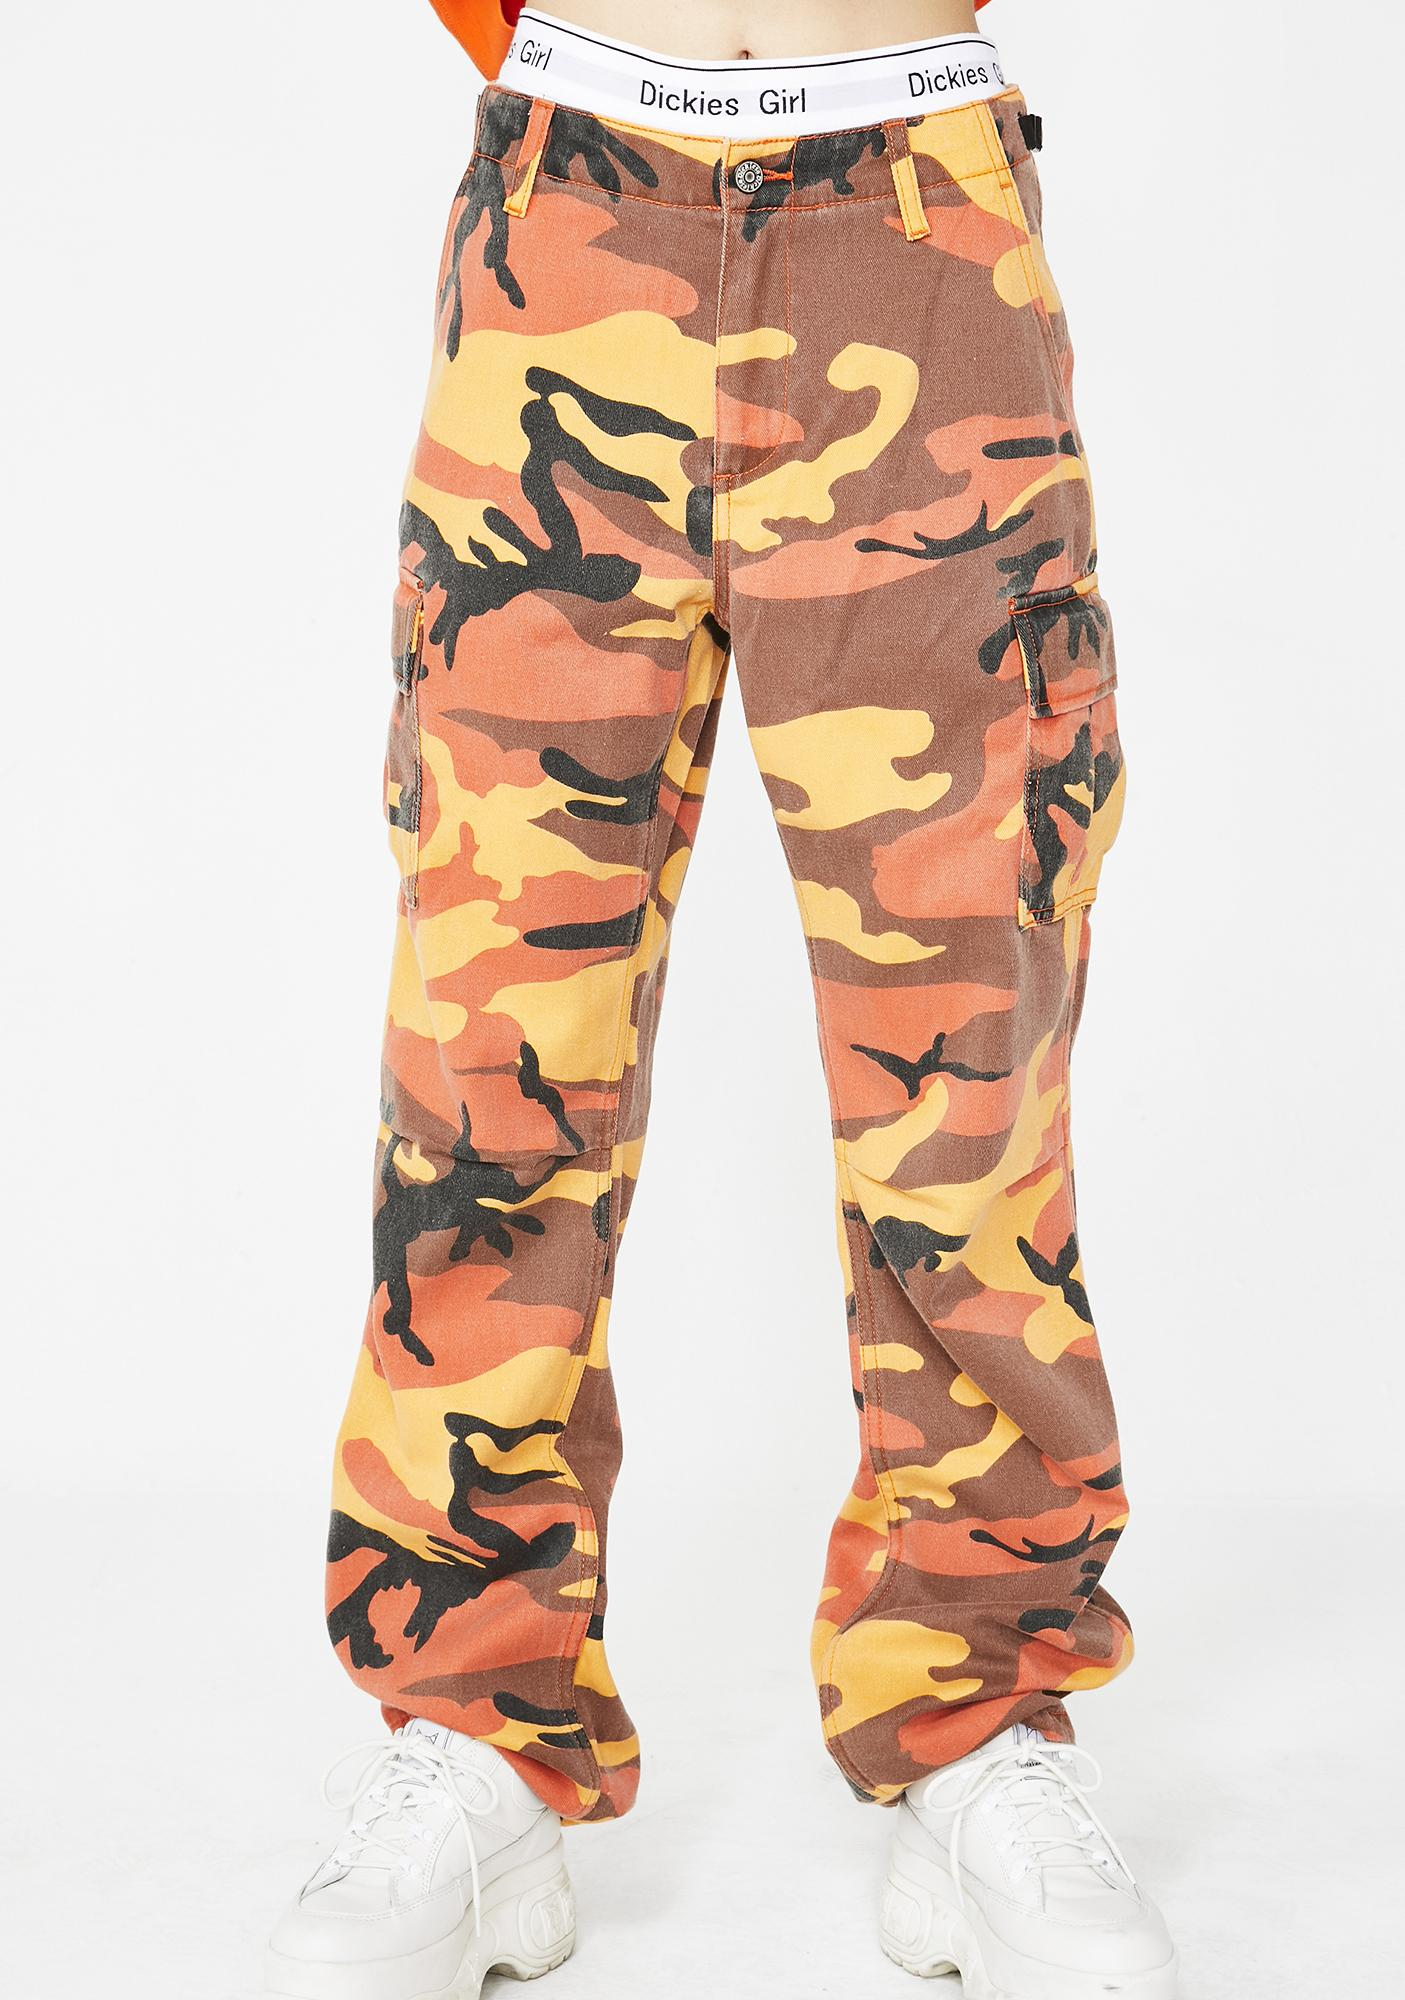 Dickies Girl Camouflage Utility Pants